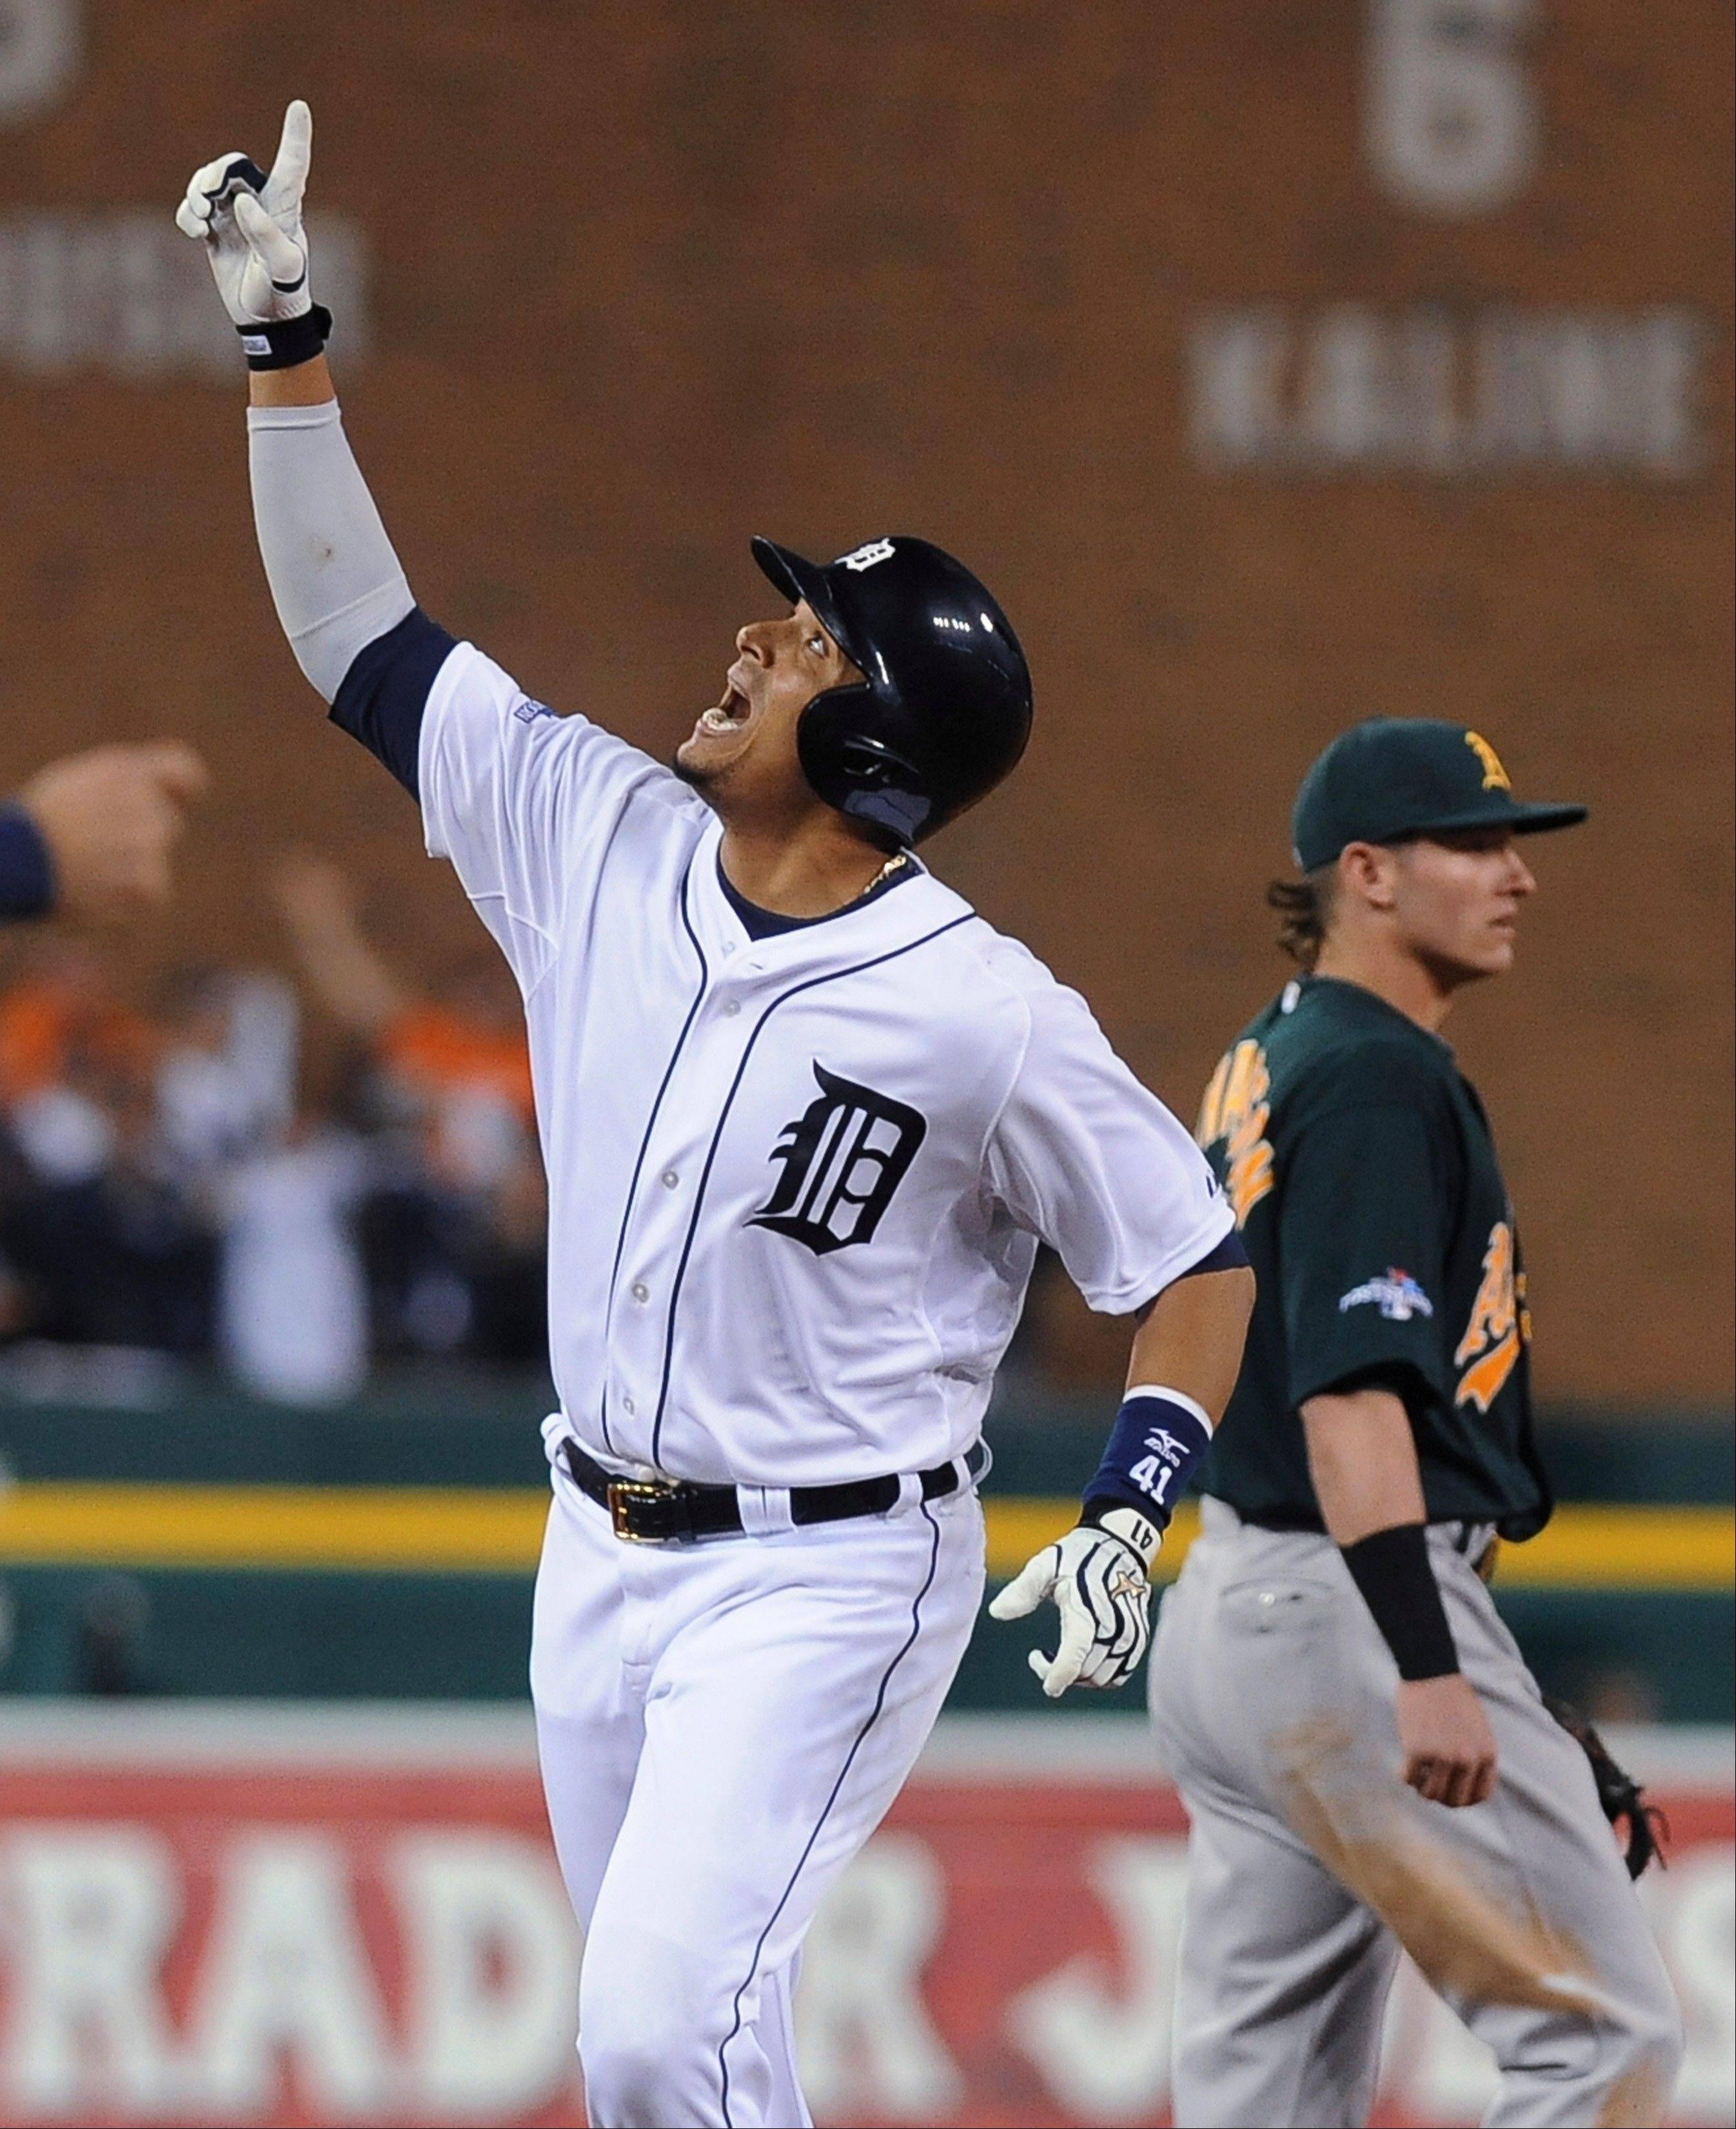 Tigers designated hitter Victor Martinez hit a disputed solo home run during the seventh inning Tuesday in Game 4 of an American League Division Series against the Oakland Athletics.